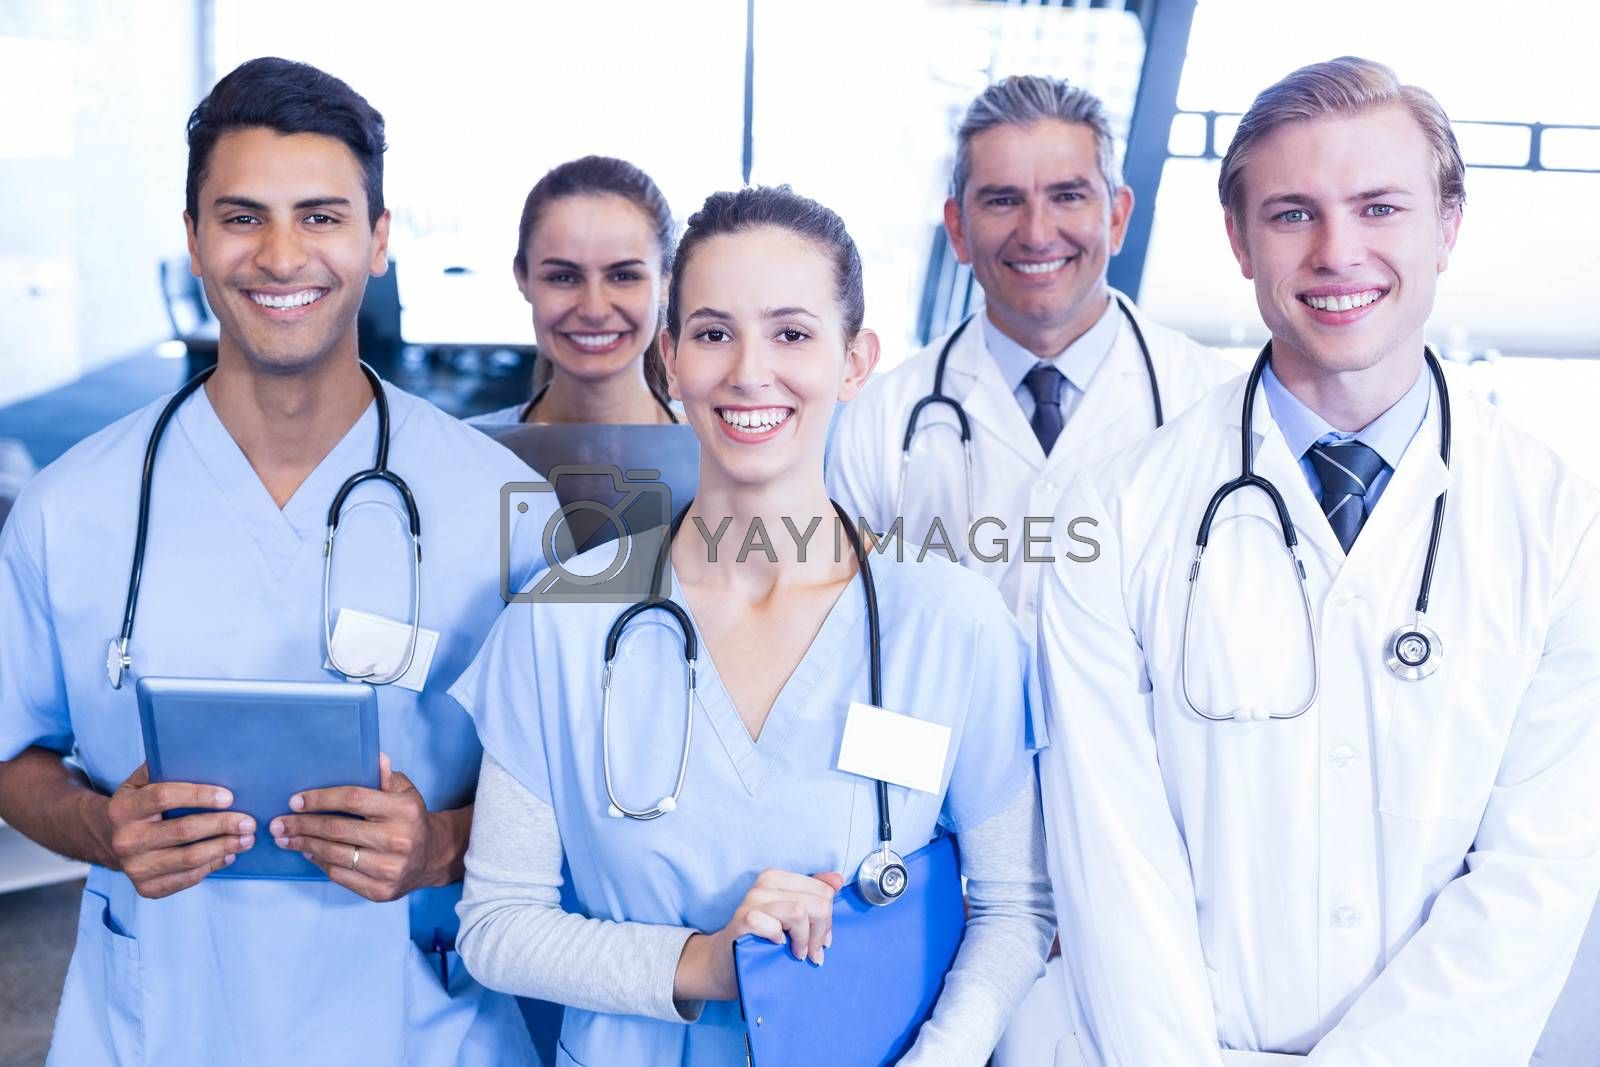 Portrait of medical team standing together and smiling in hospital